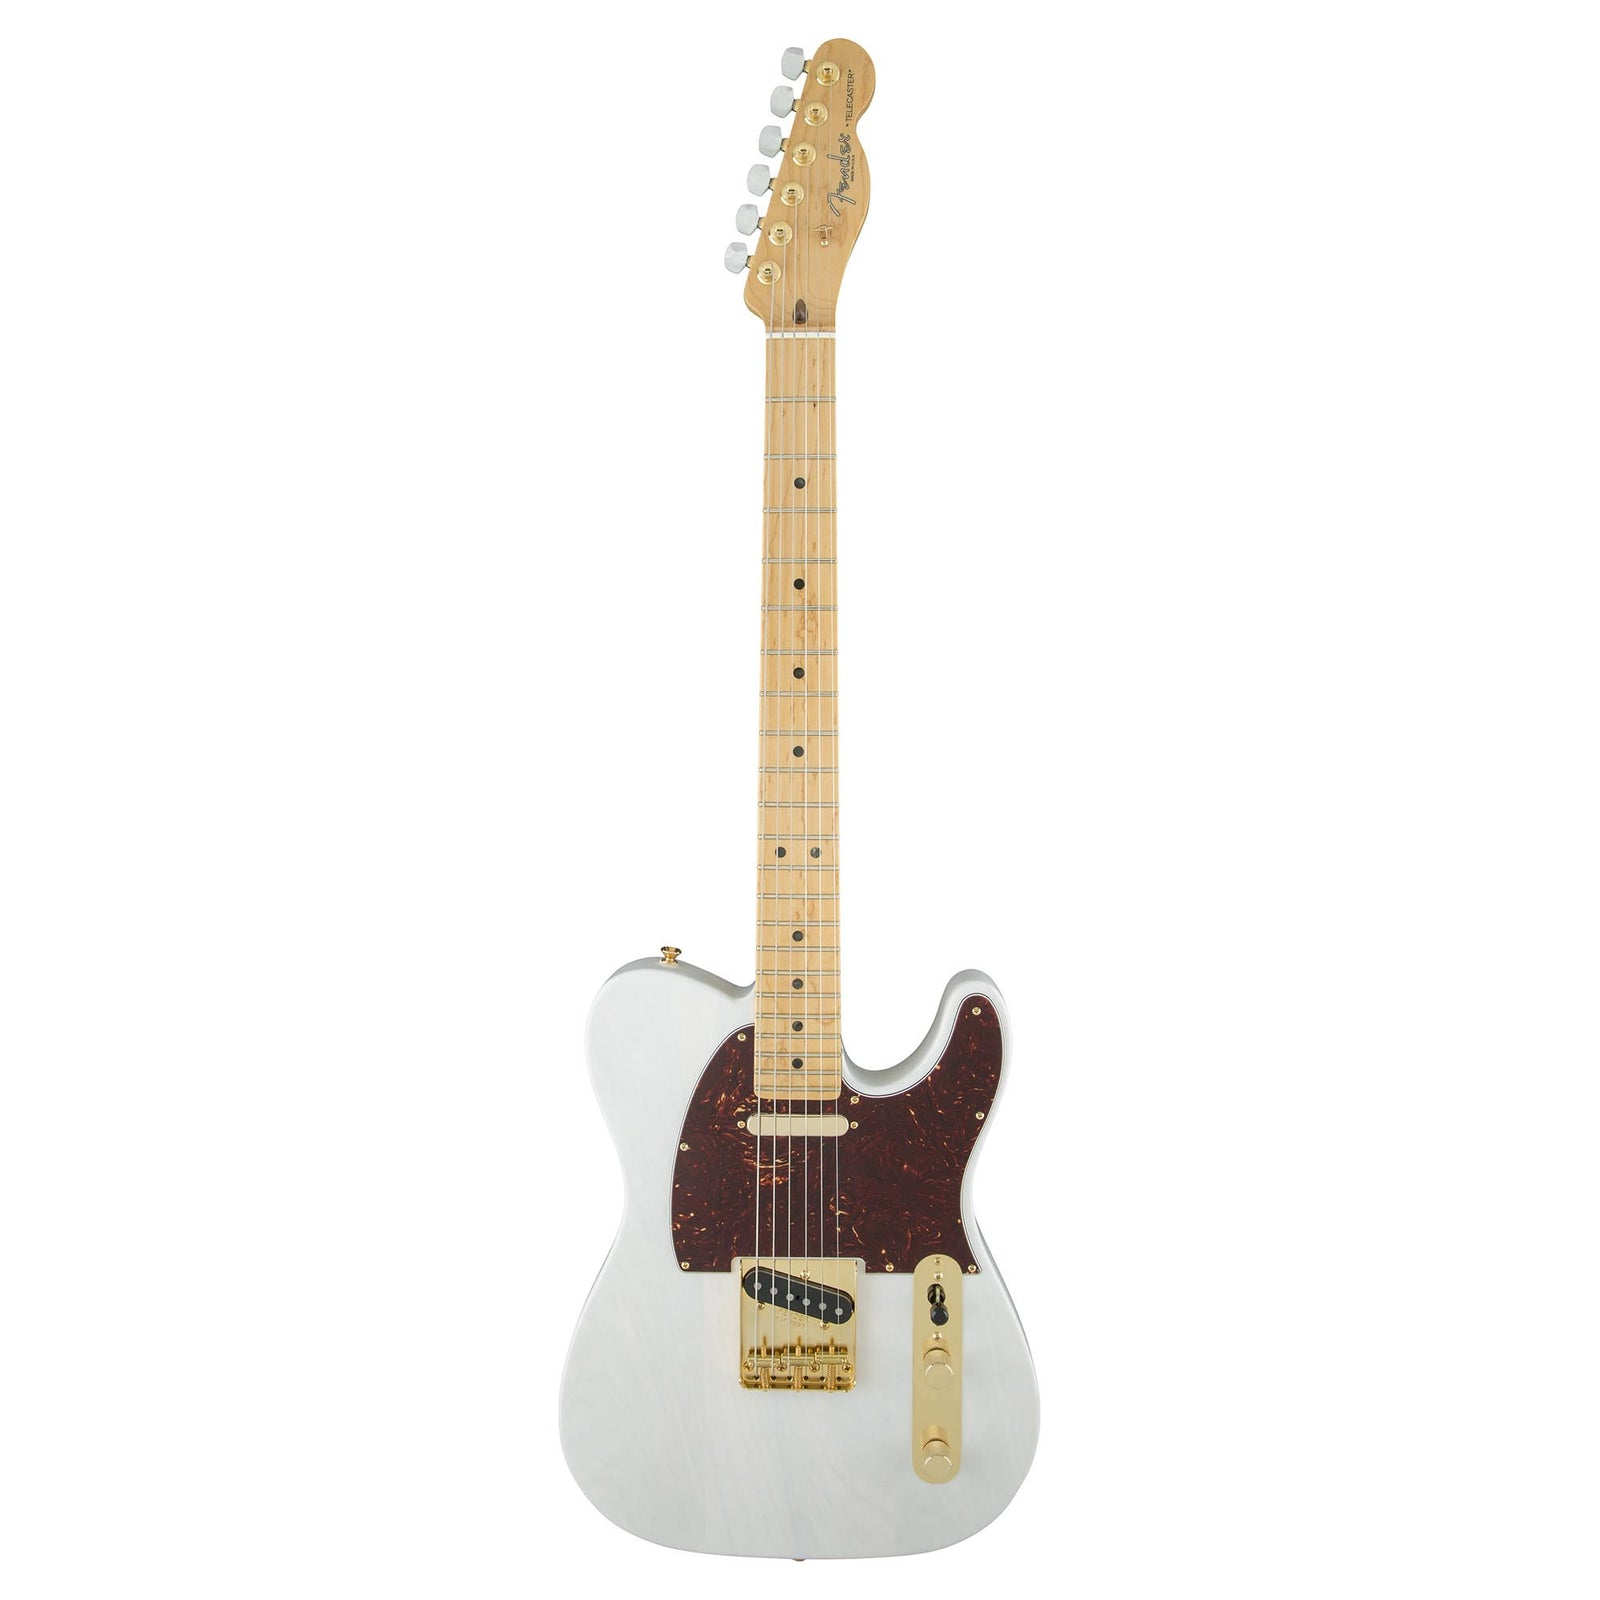 Fender Limited Edition Select Light Ash Telecaster - White Blonde